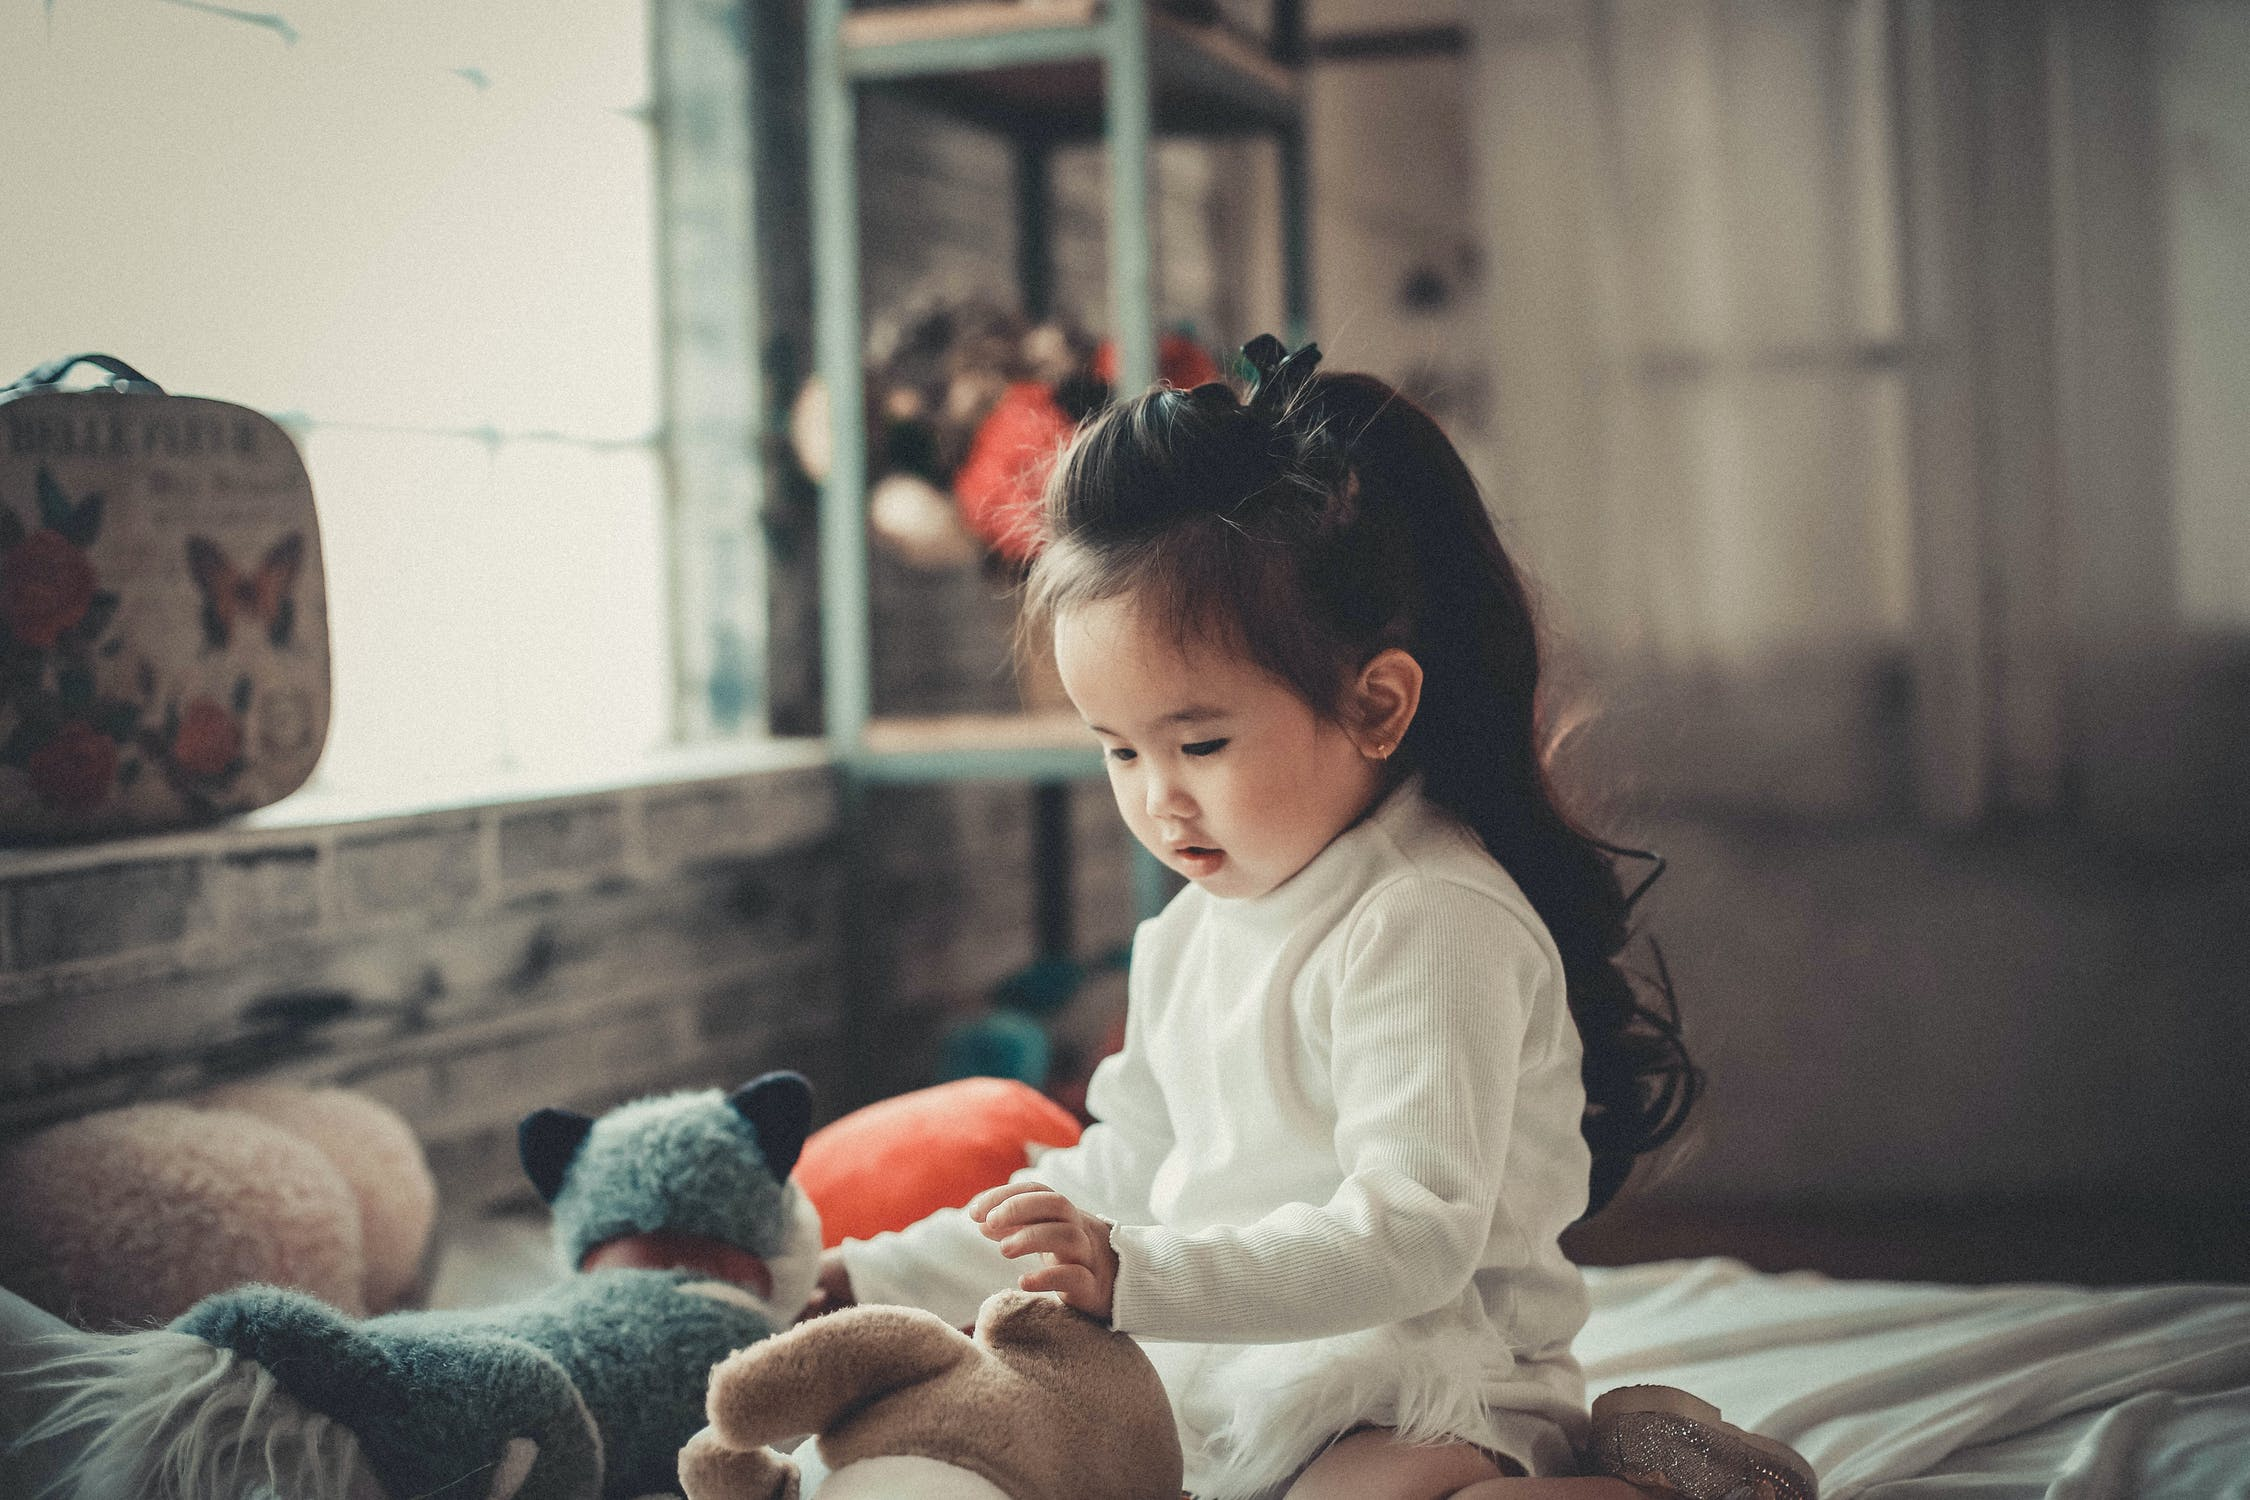 Girl at home with stuffed toys